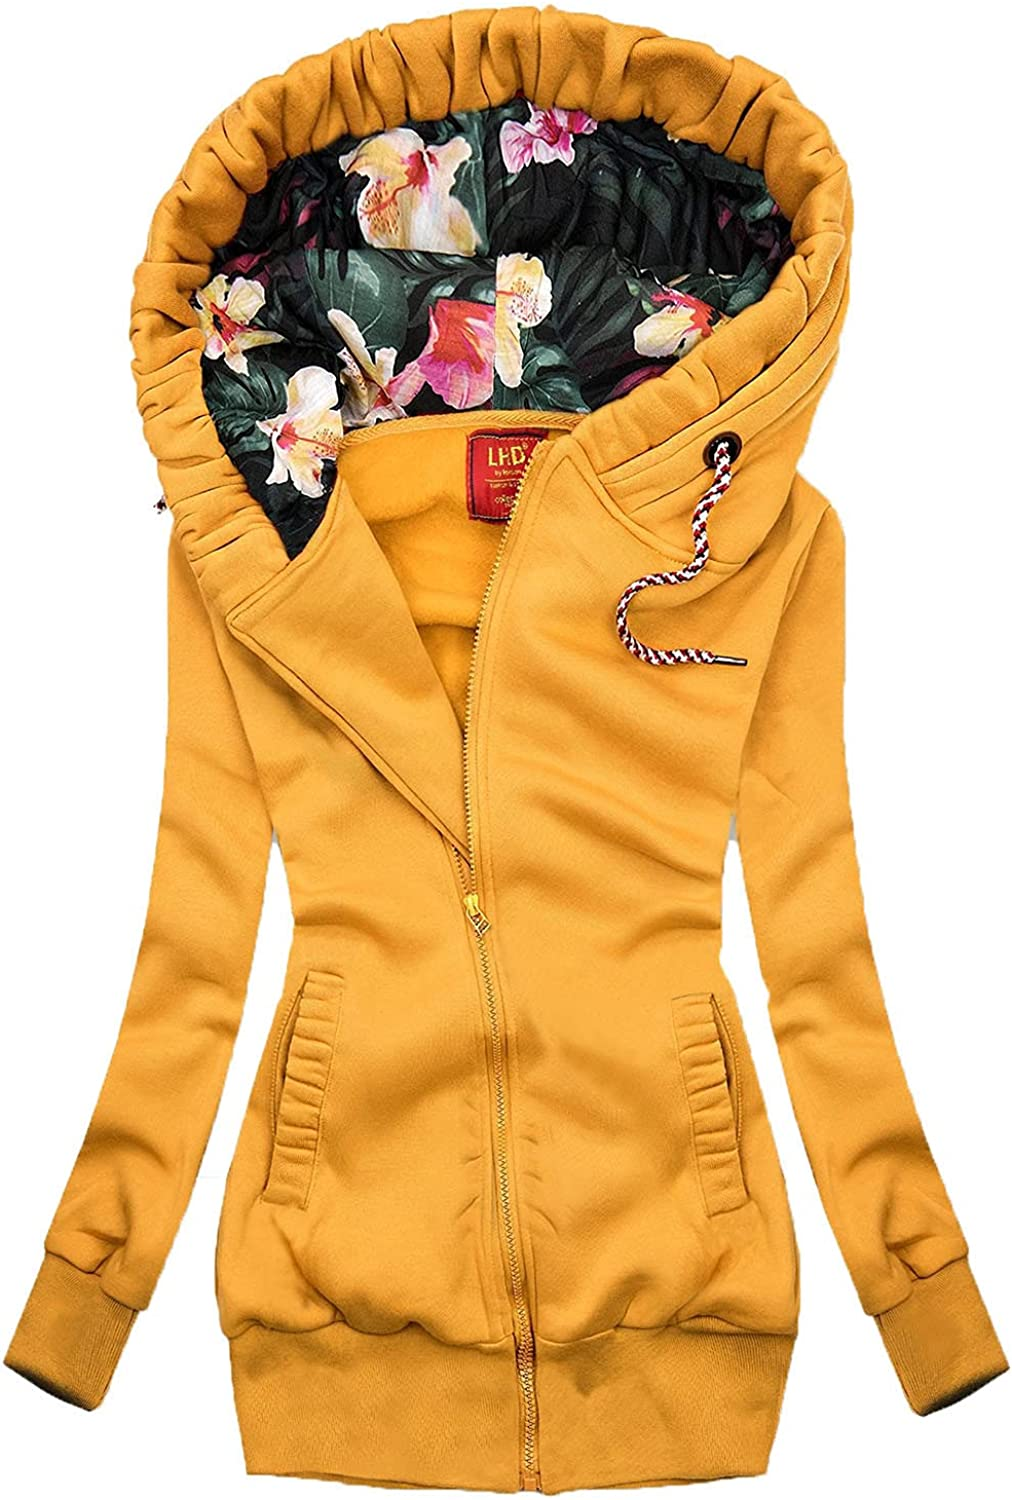 Quilted Jackets for Women,Women's Large Printed Hooded Long-Sleeve Zipper Blouse Autumn Pockets Tops Ladies Slim Long Coats